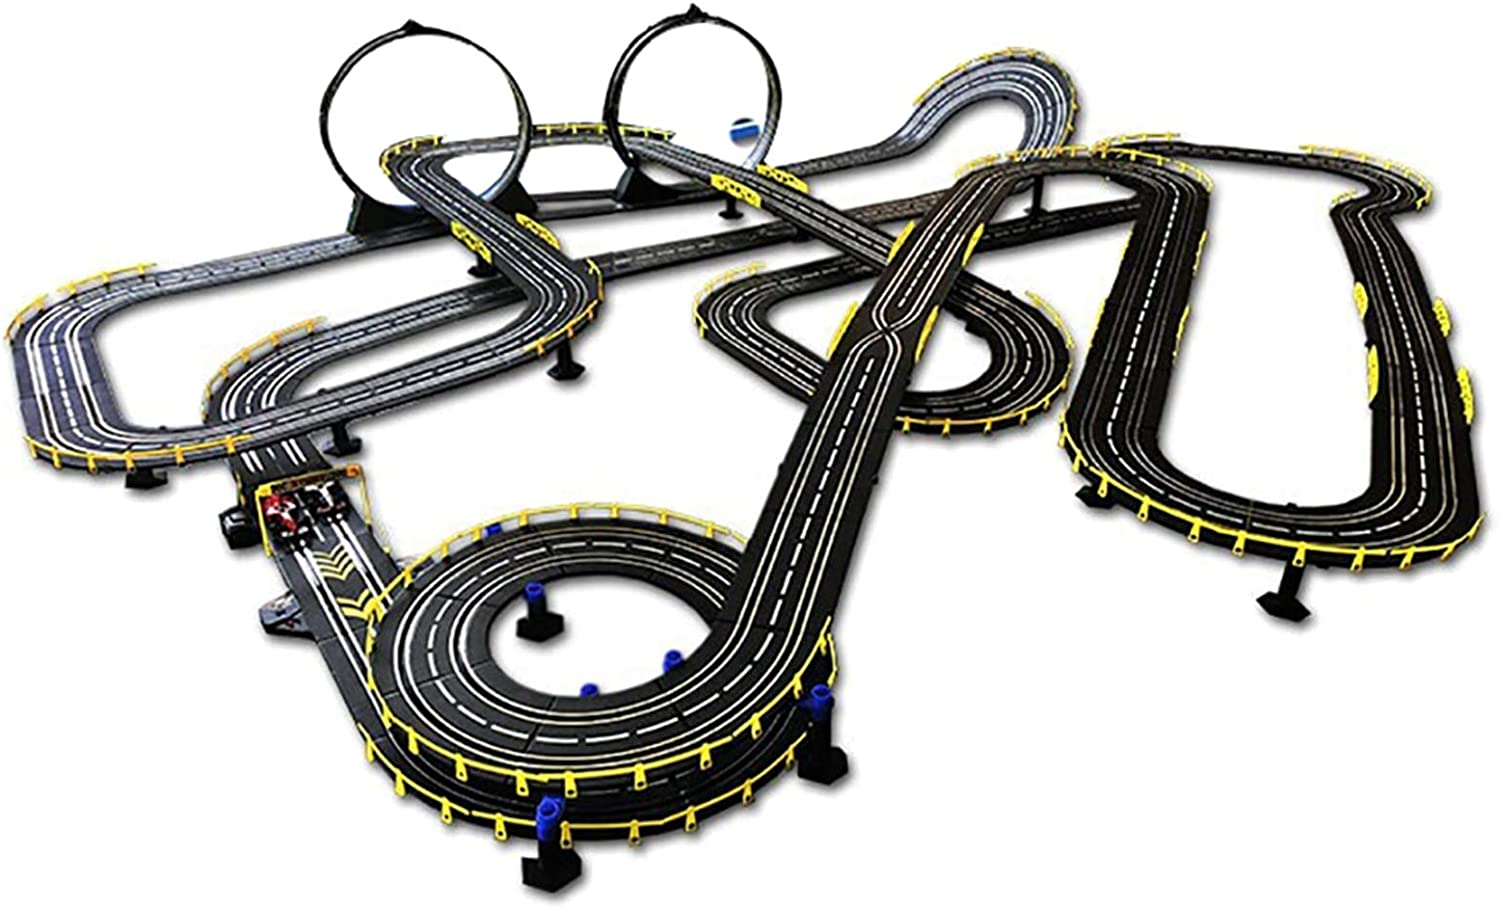 LINGLING Slot Car Race Tracks Track Racing 40% OFF Cheap Sale Fees free!! Children's Toys B